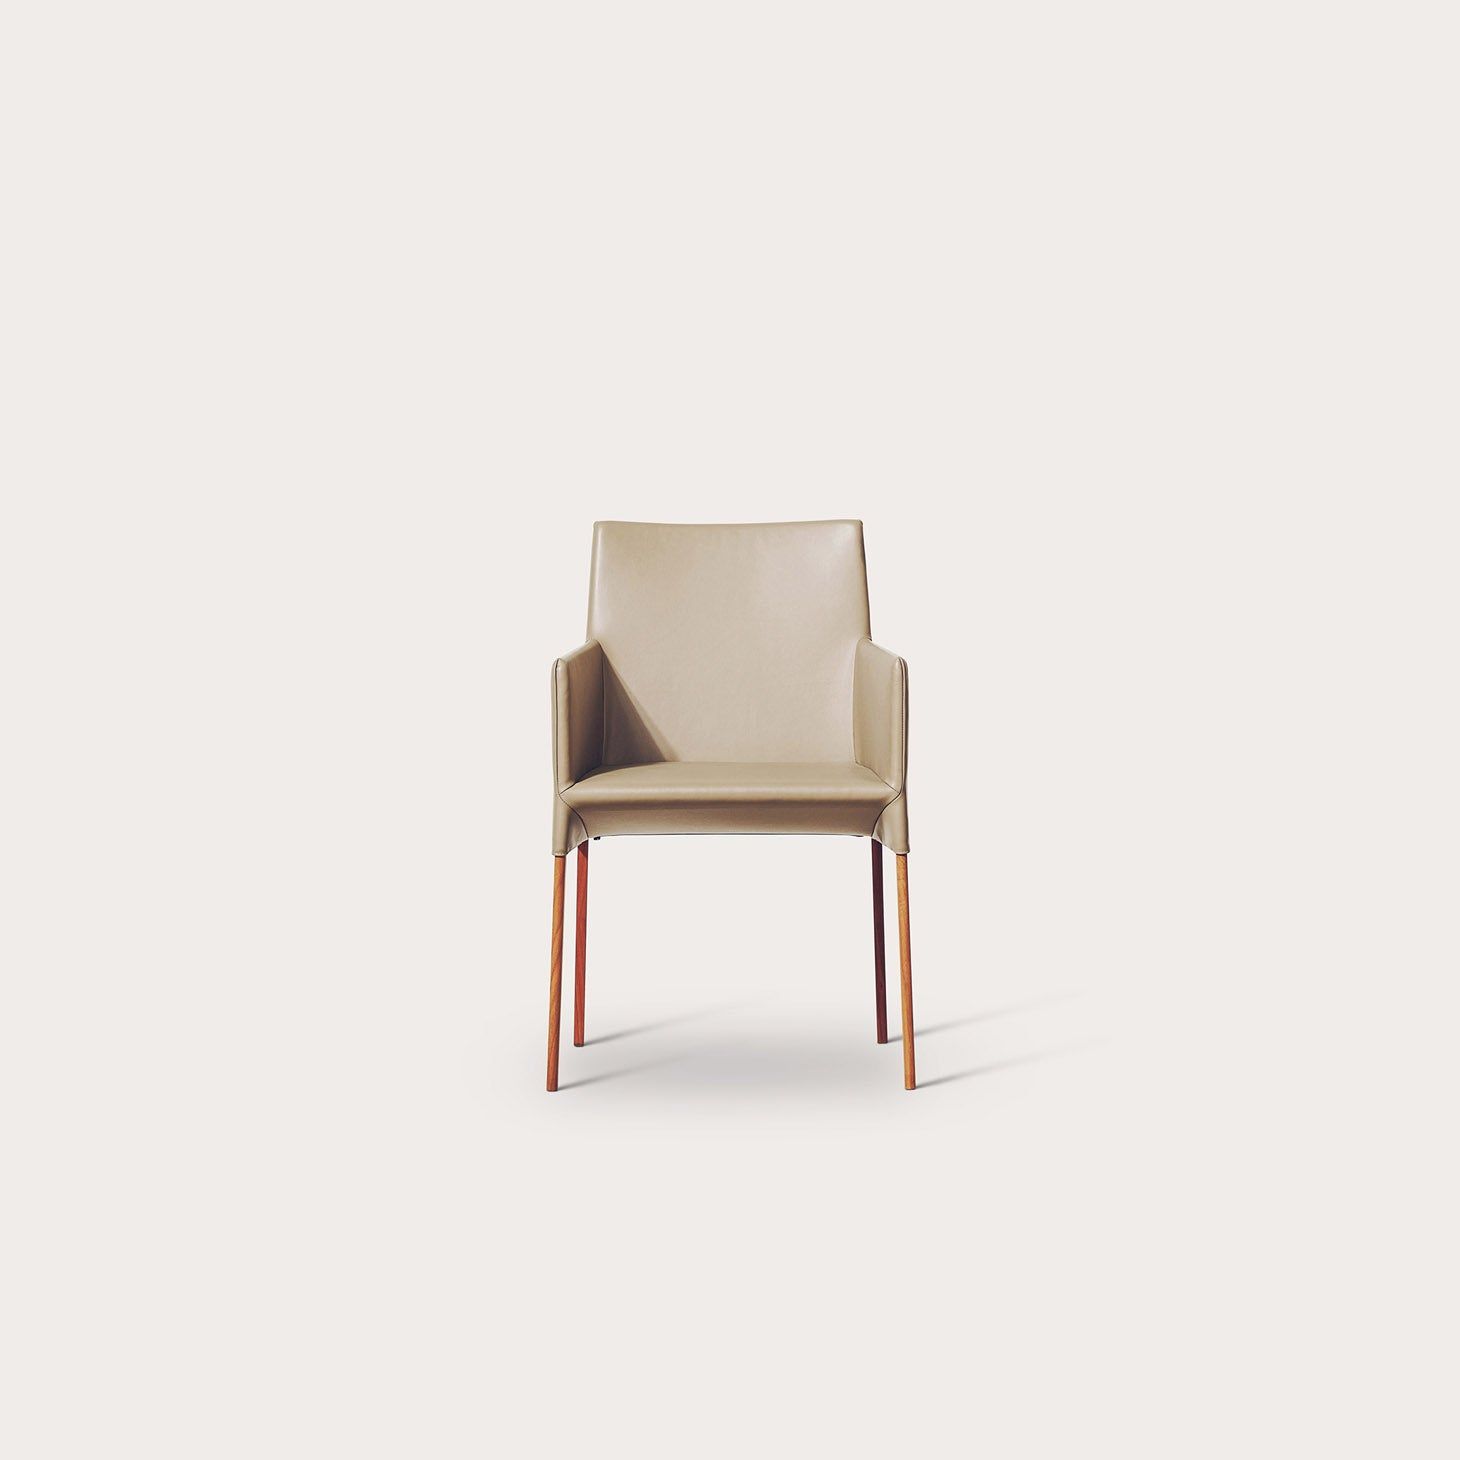 Mila Seating Niels Bendtsen Designer Furniture Sku: 134-120-10015